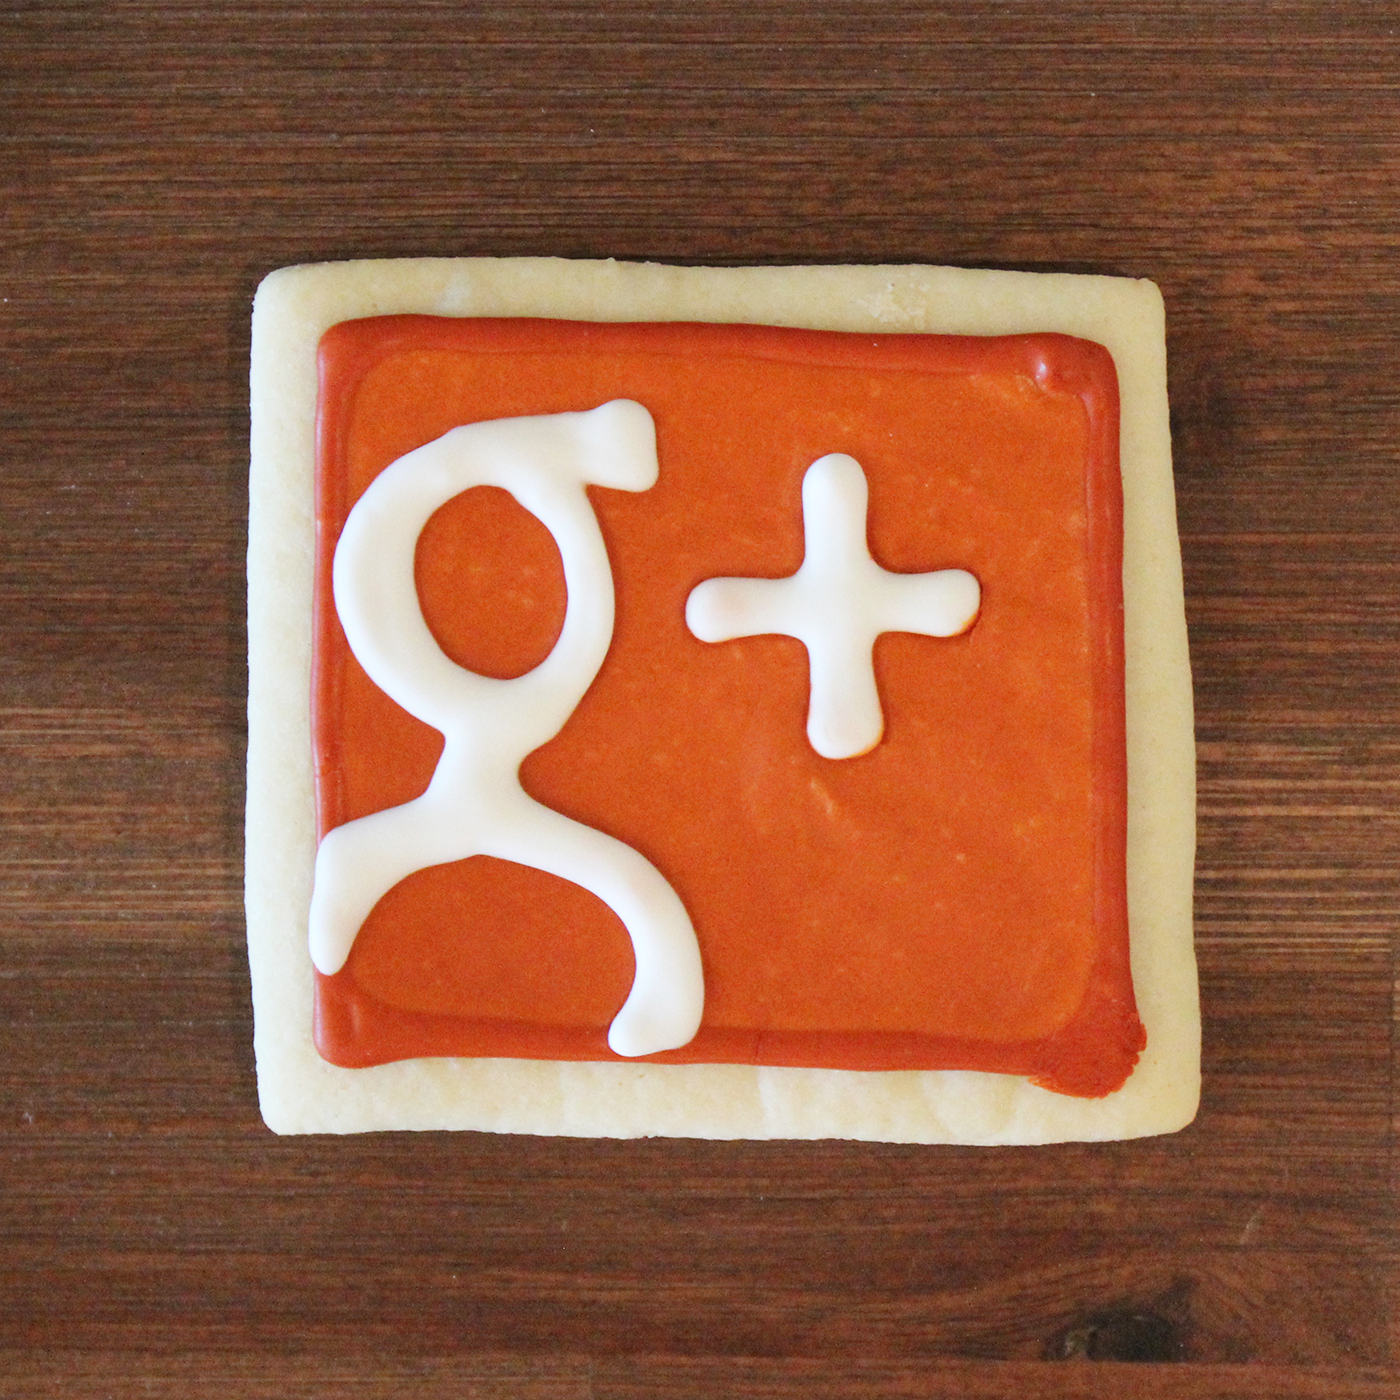 iOS-App-Icon-Cookies-google